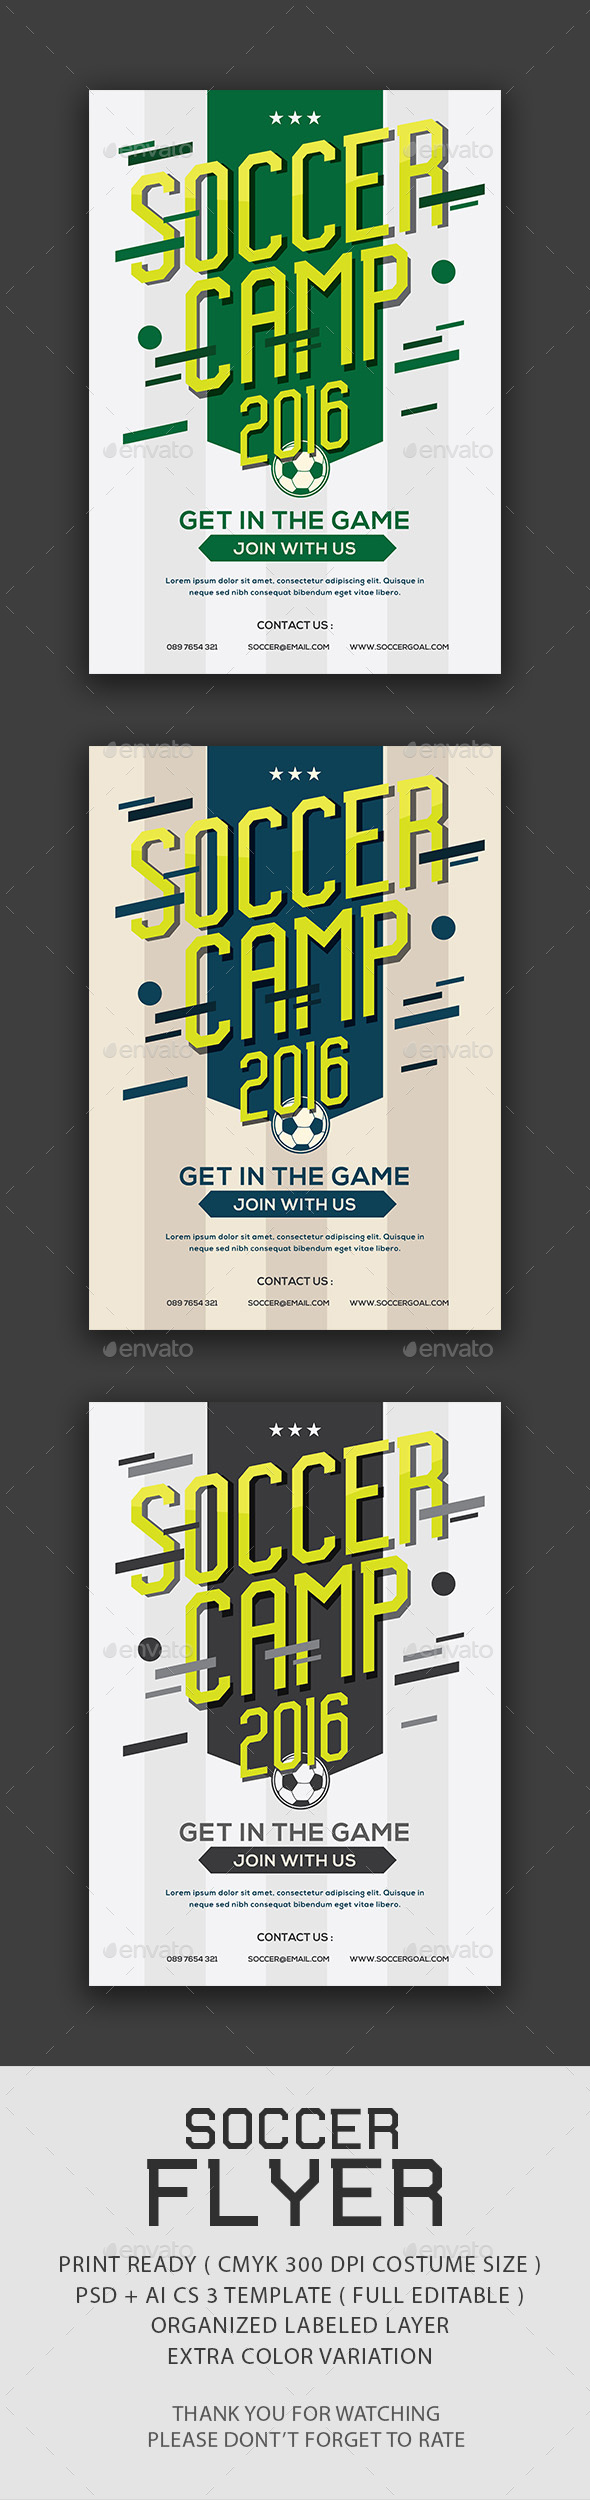 Soccer Camp Flyer - Sports Events